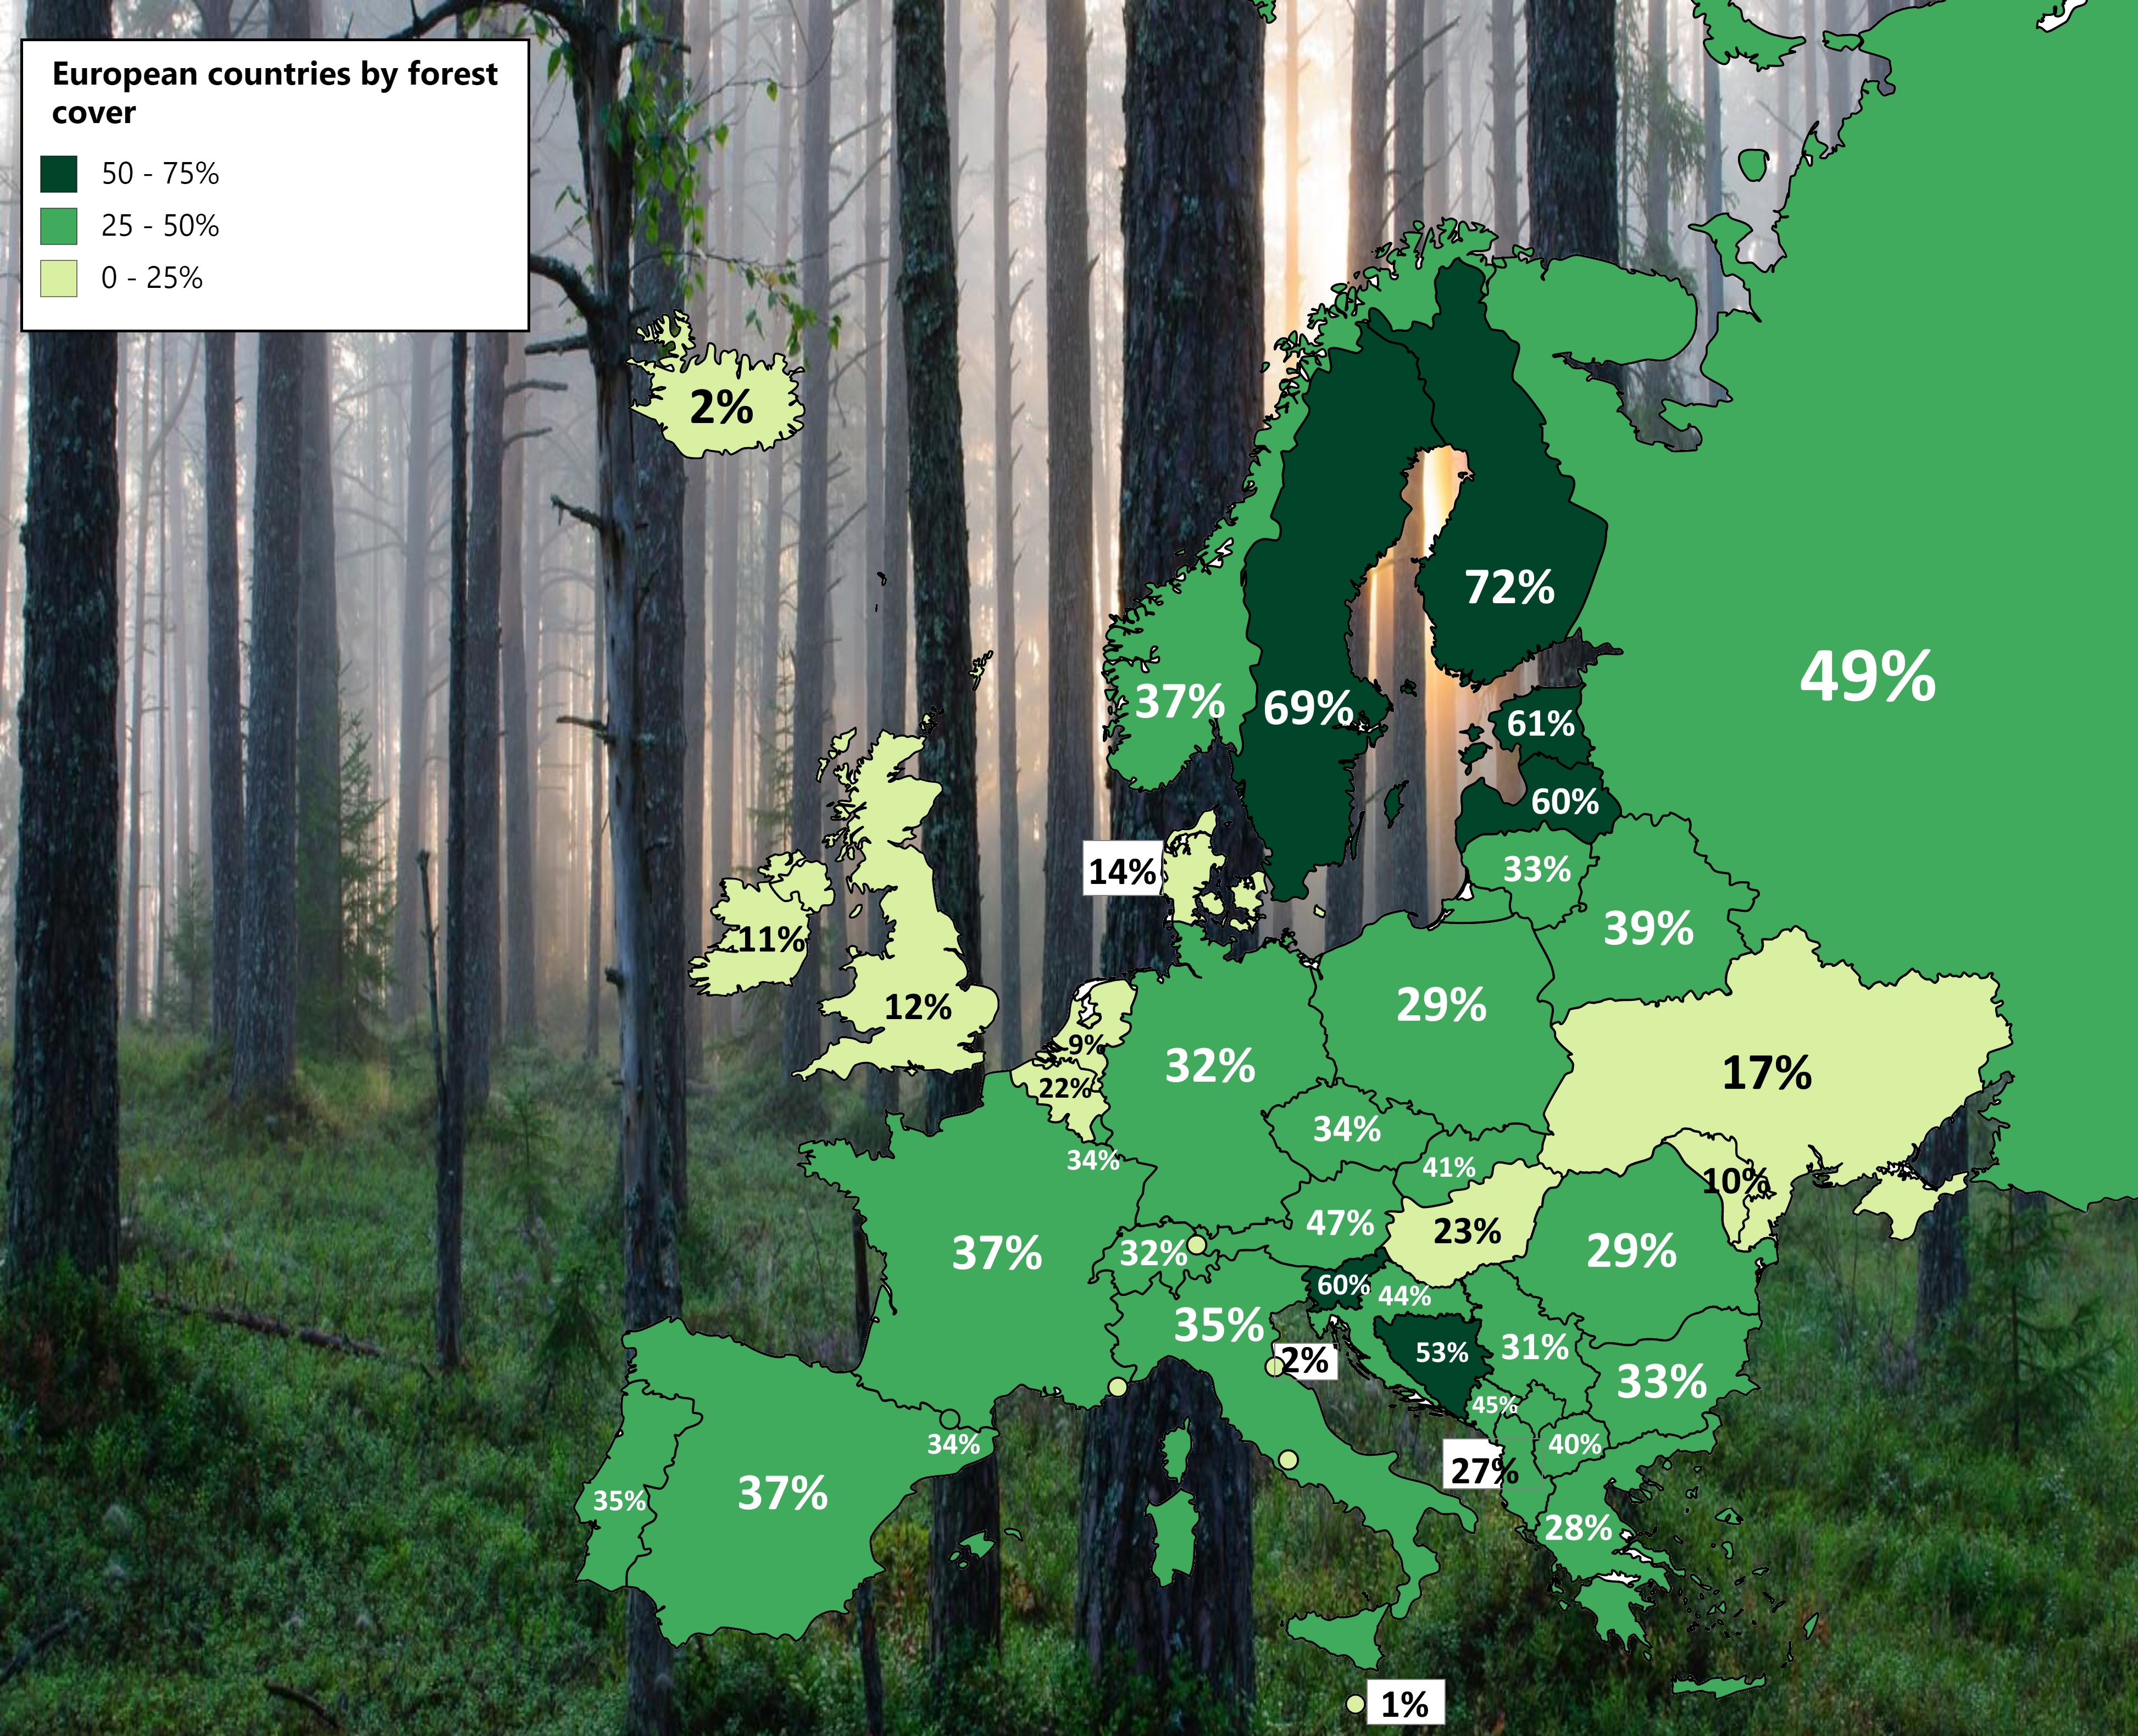 Countries in Europe by forest cover